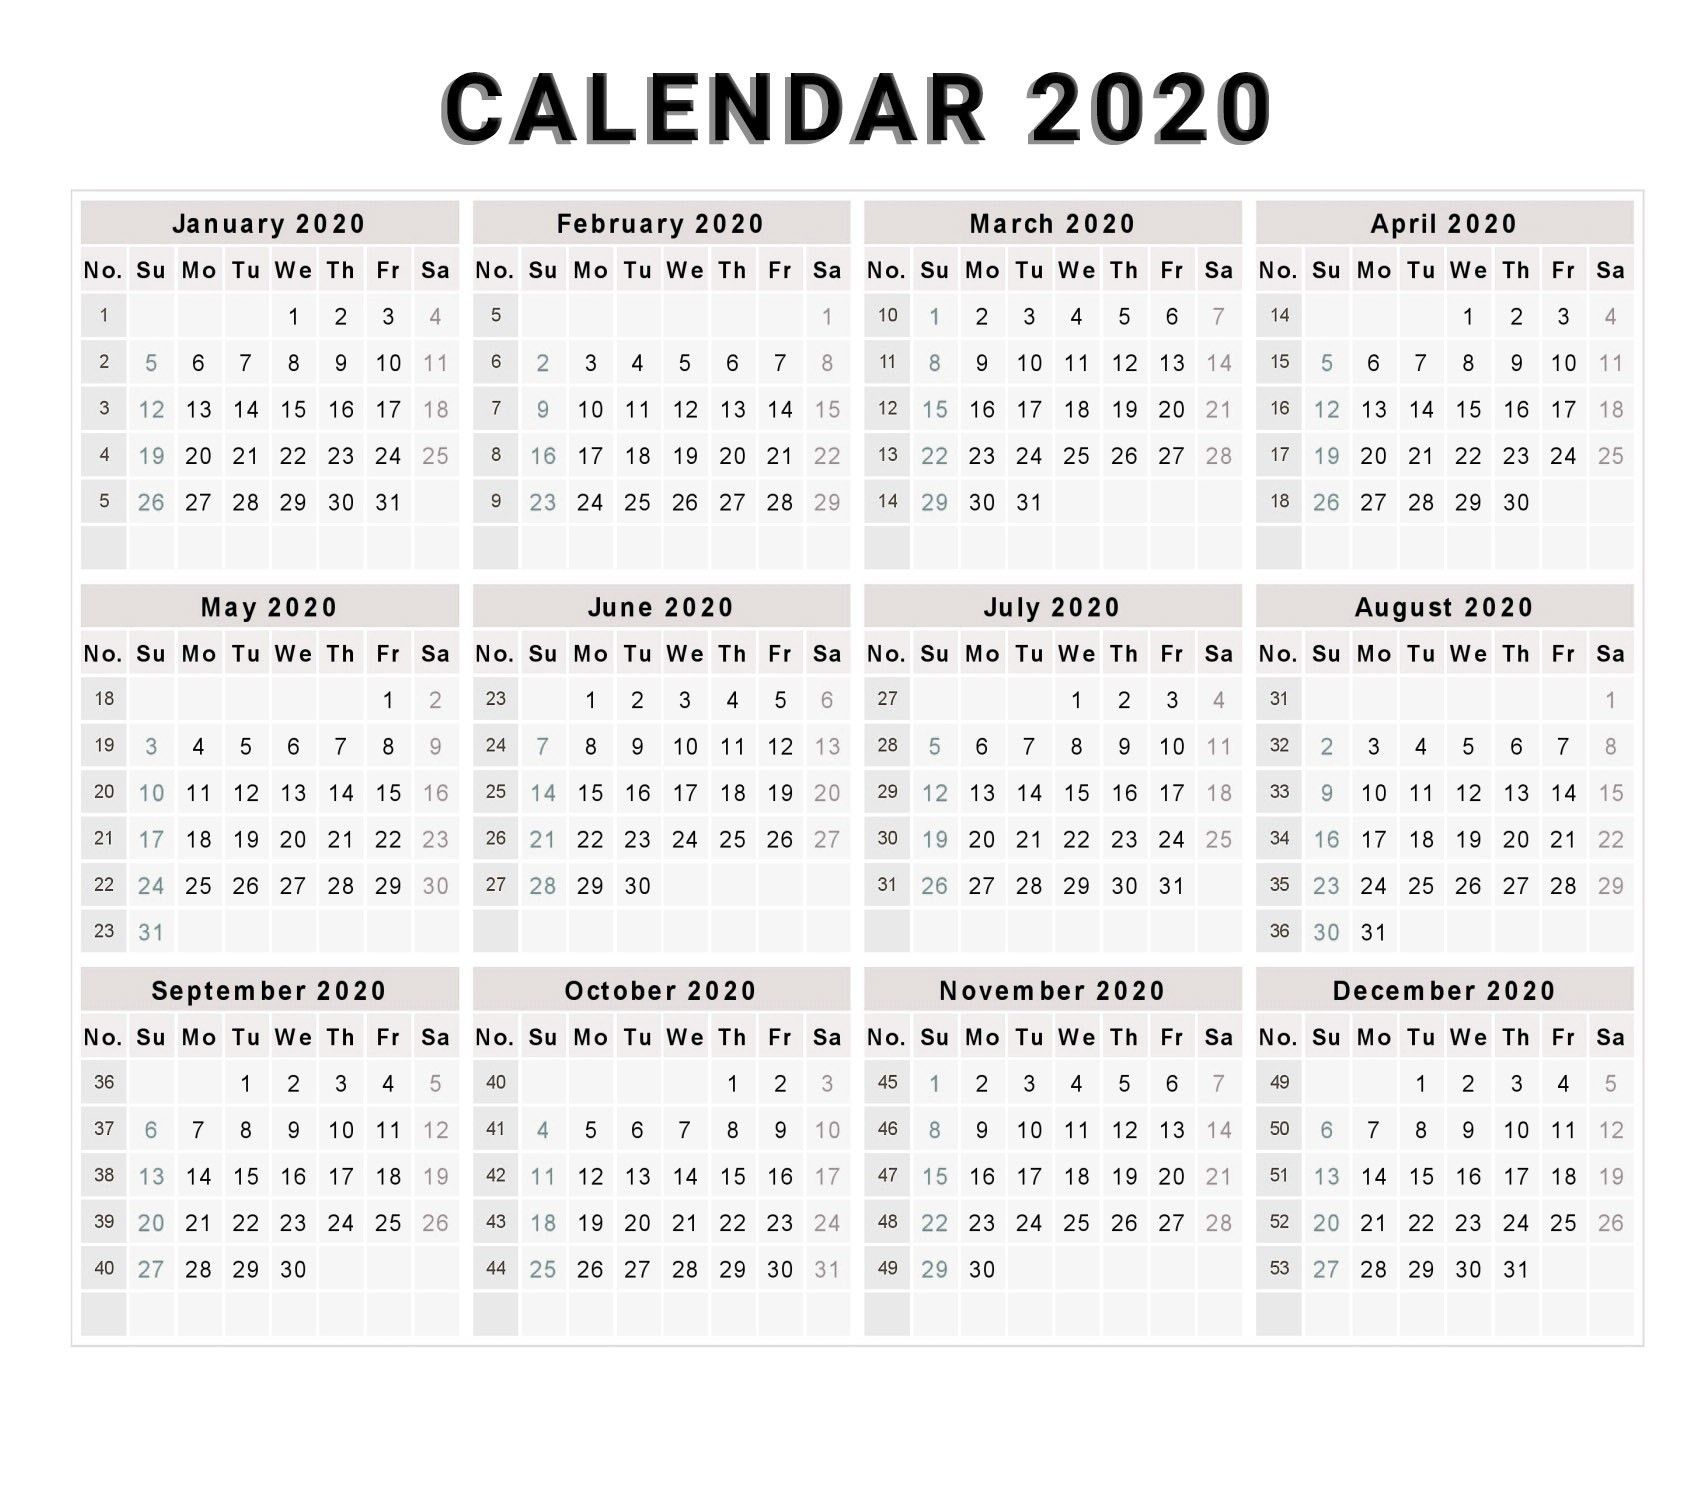 Calendar 2020 Free Printable Calendar 2020 Free 2020 with regard to 2020 Calendar By Month And Week Number Excel